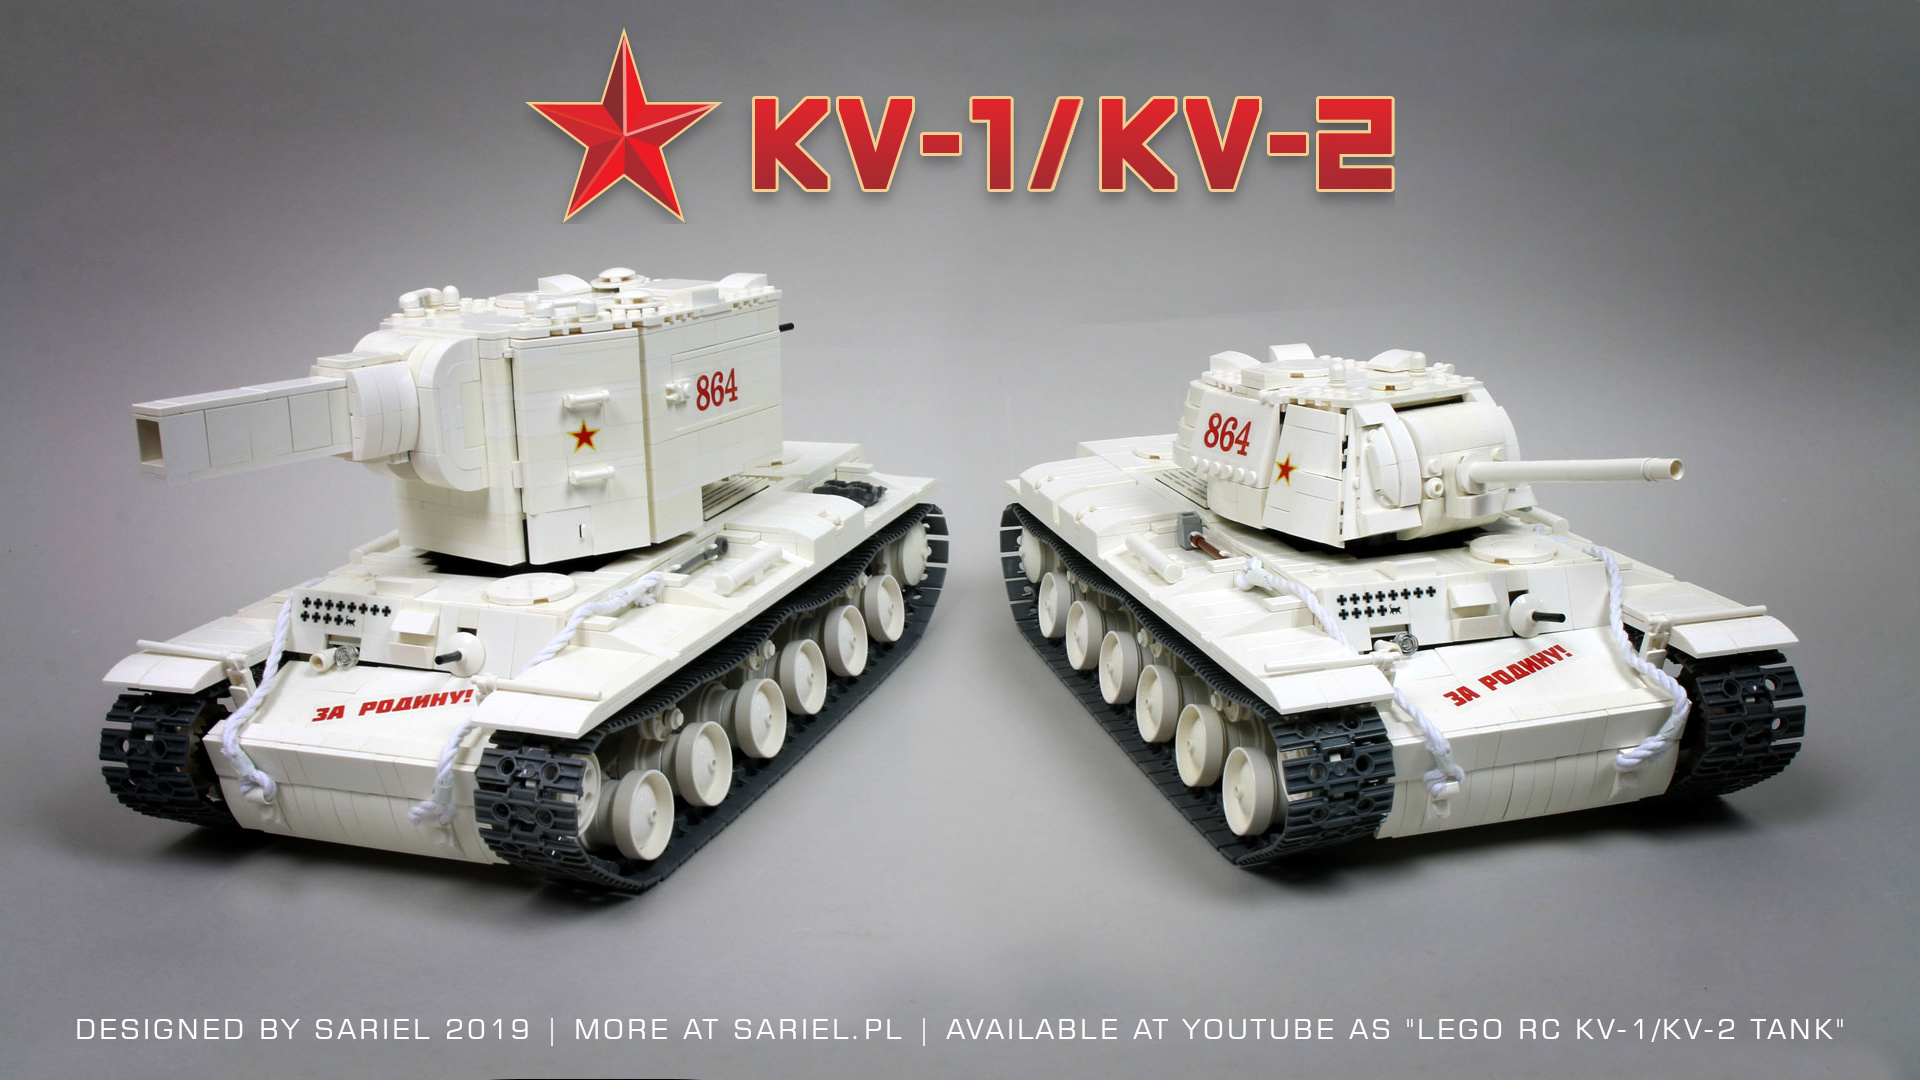 Remote-controlled Soviet KV-1 and KV-2 heavy tanks roll out in defense of the Motherland [Video]